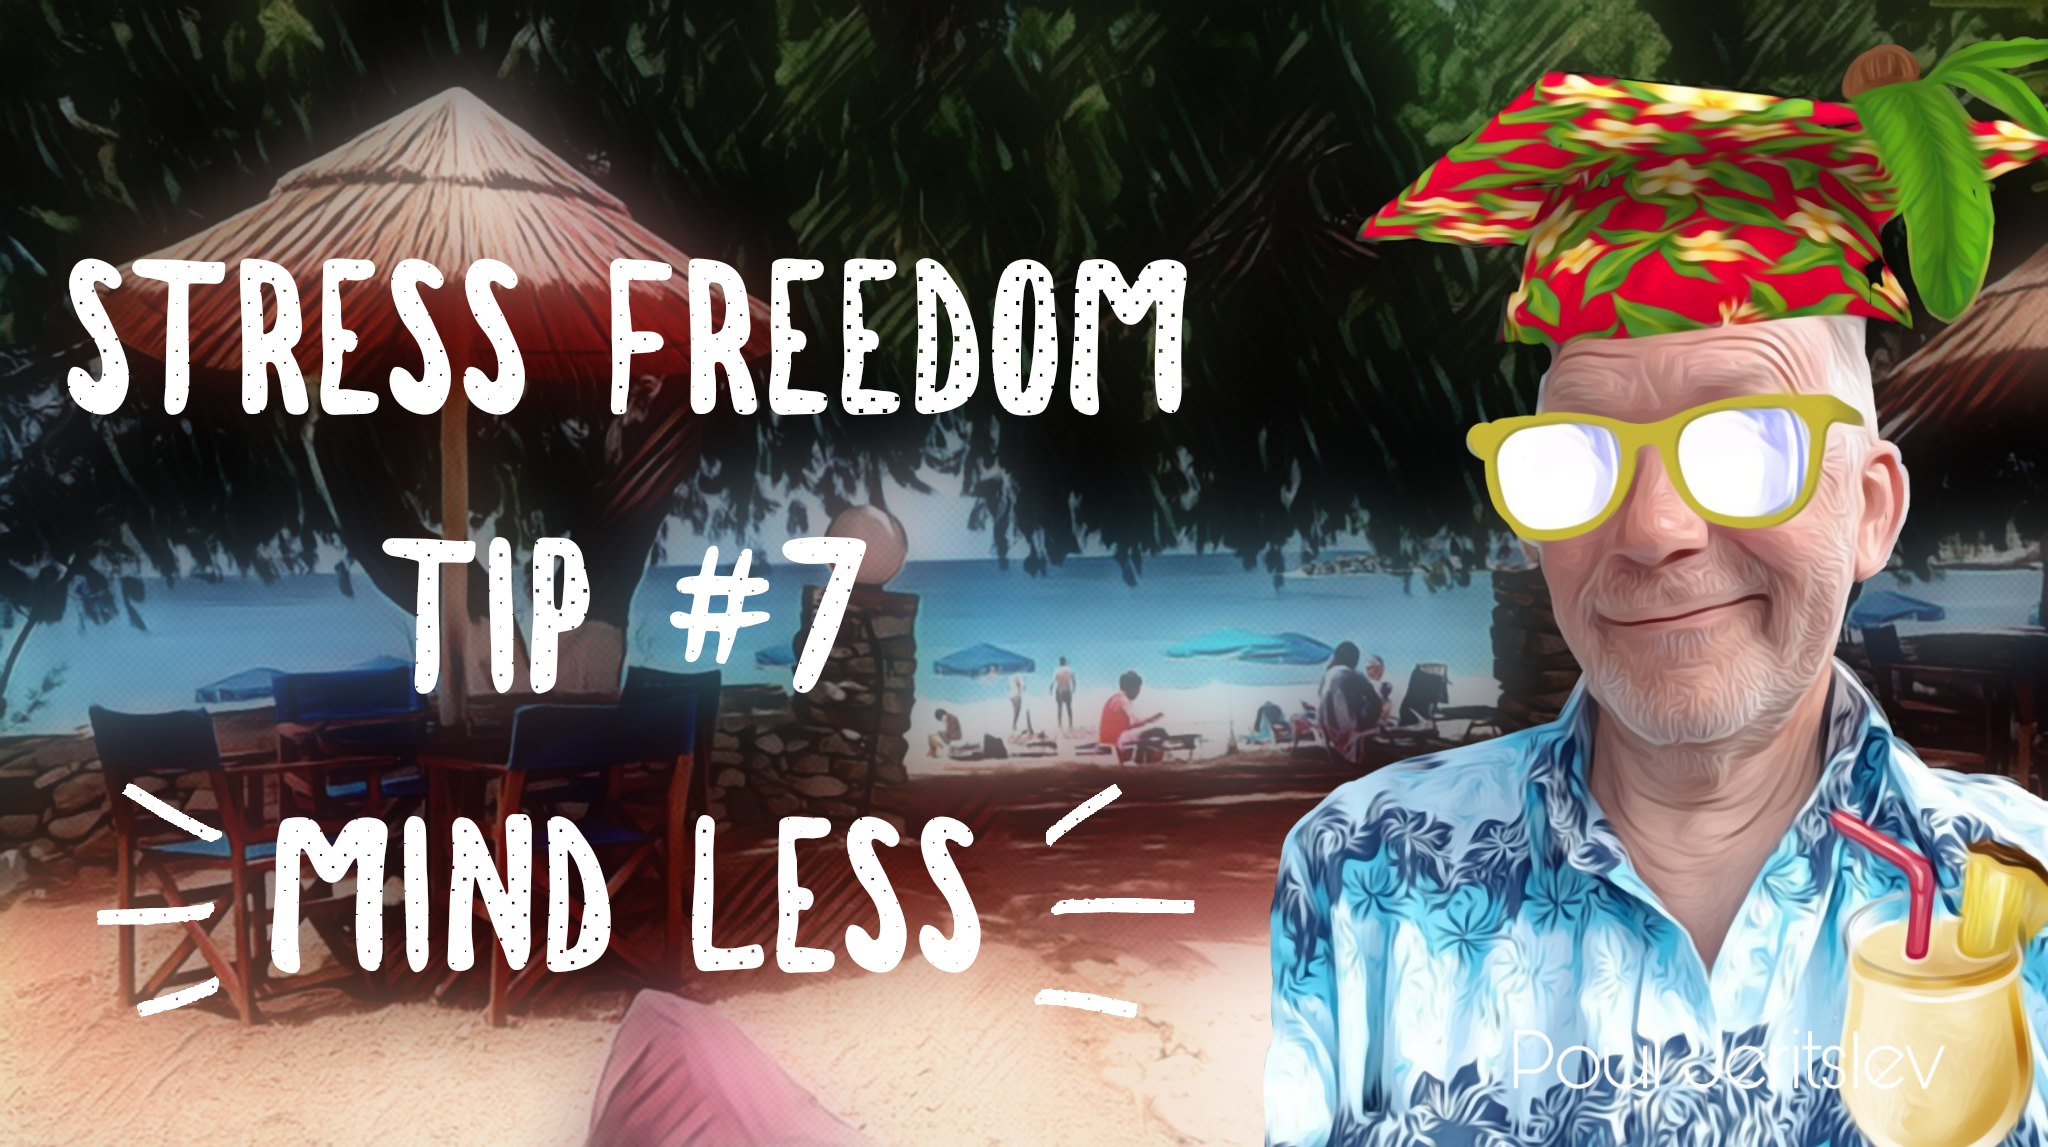 Stress Freedom TIP #7